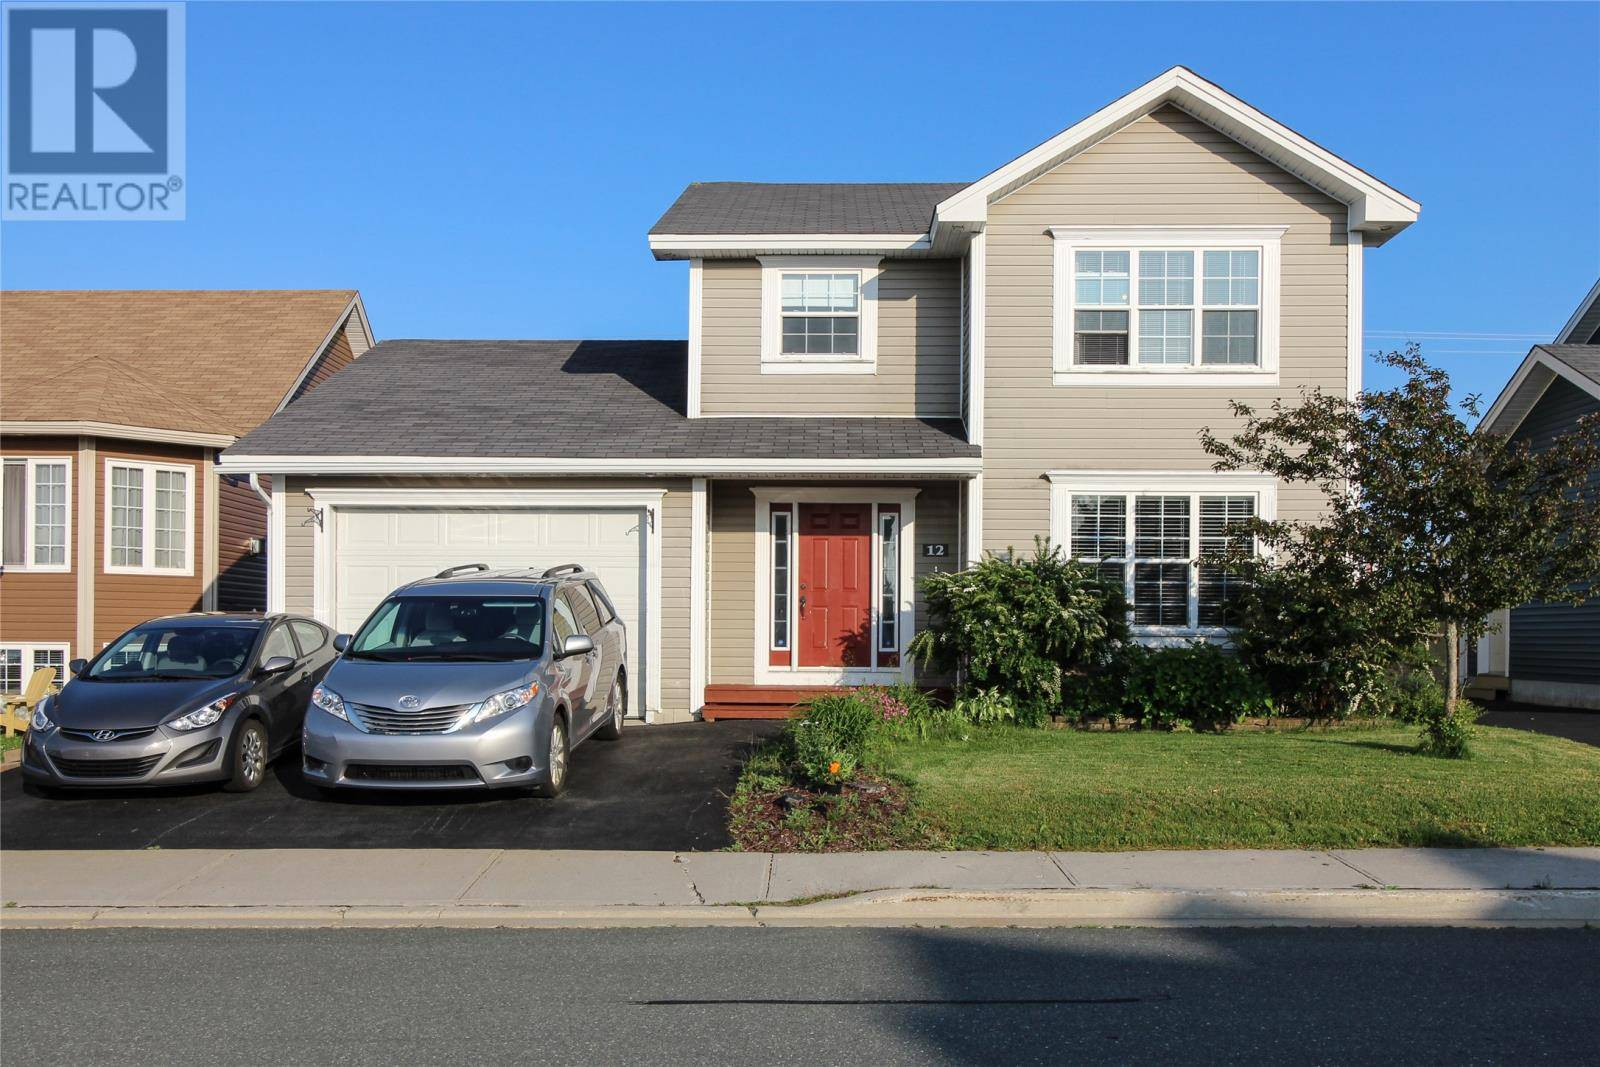 House for sale at 12 Bayberry Pl St Johns Newfoundland - MLS: 1200538